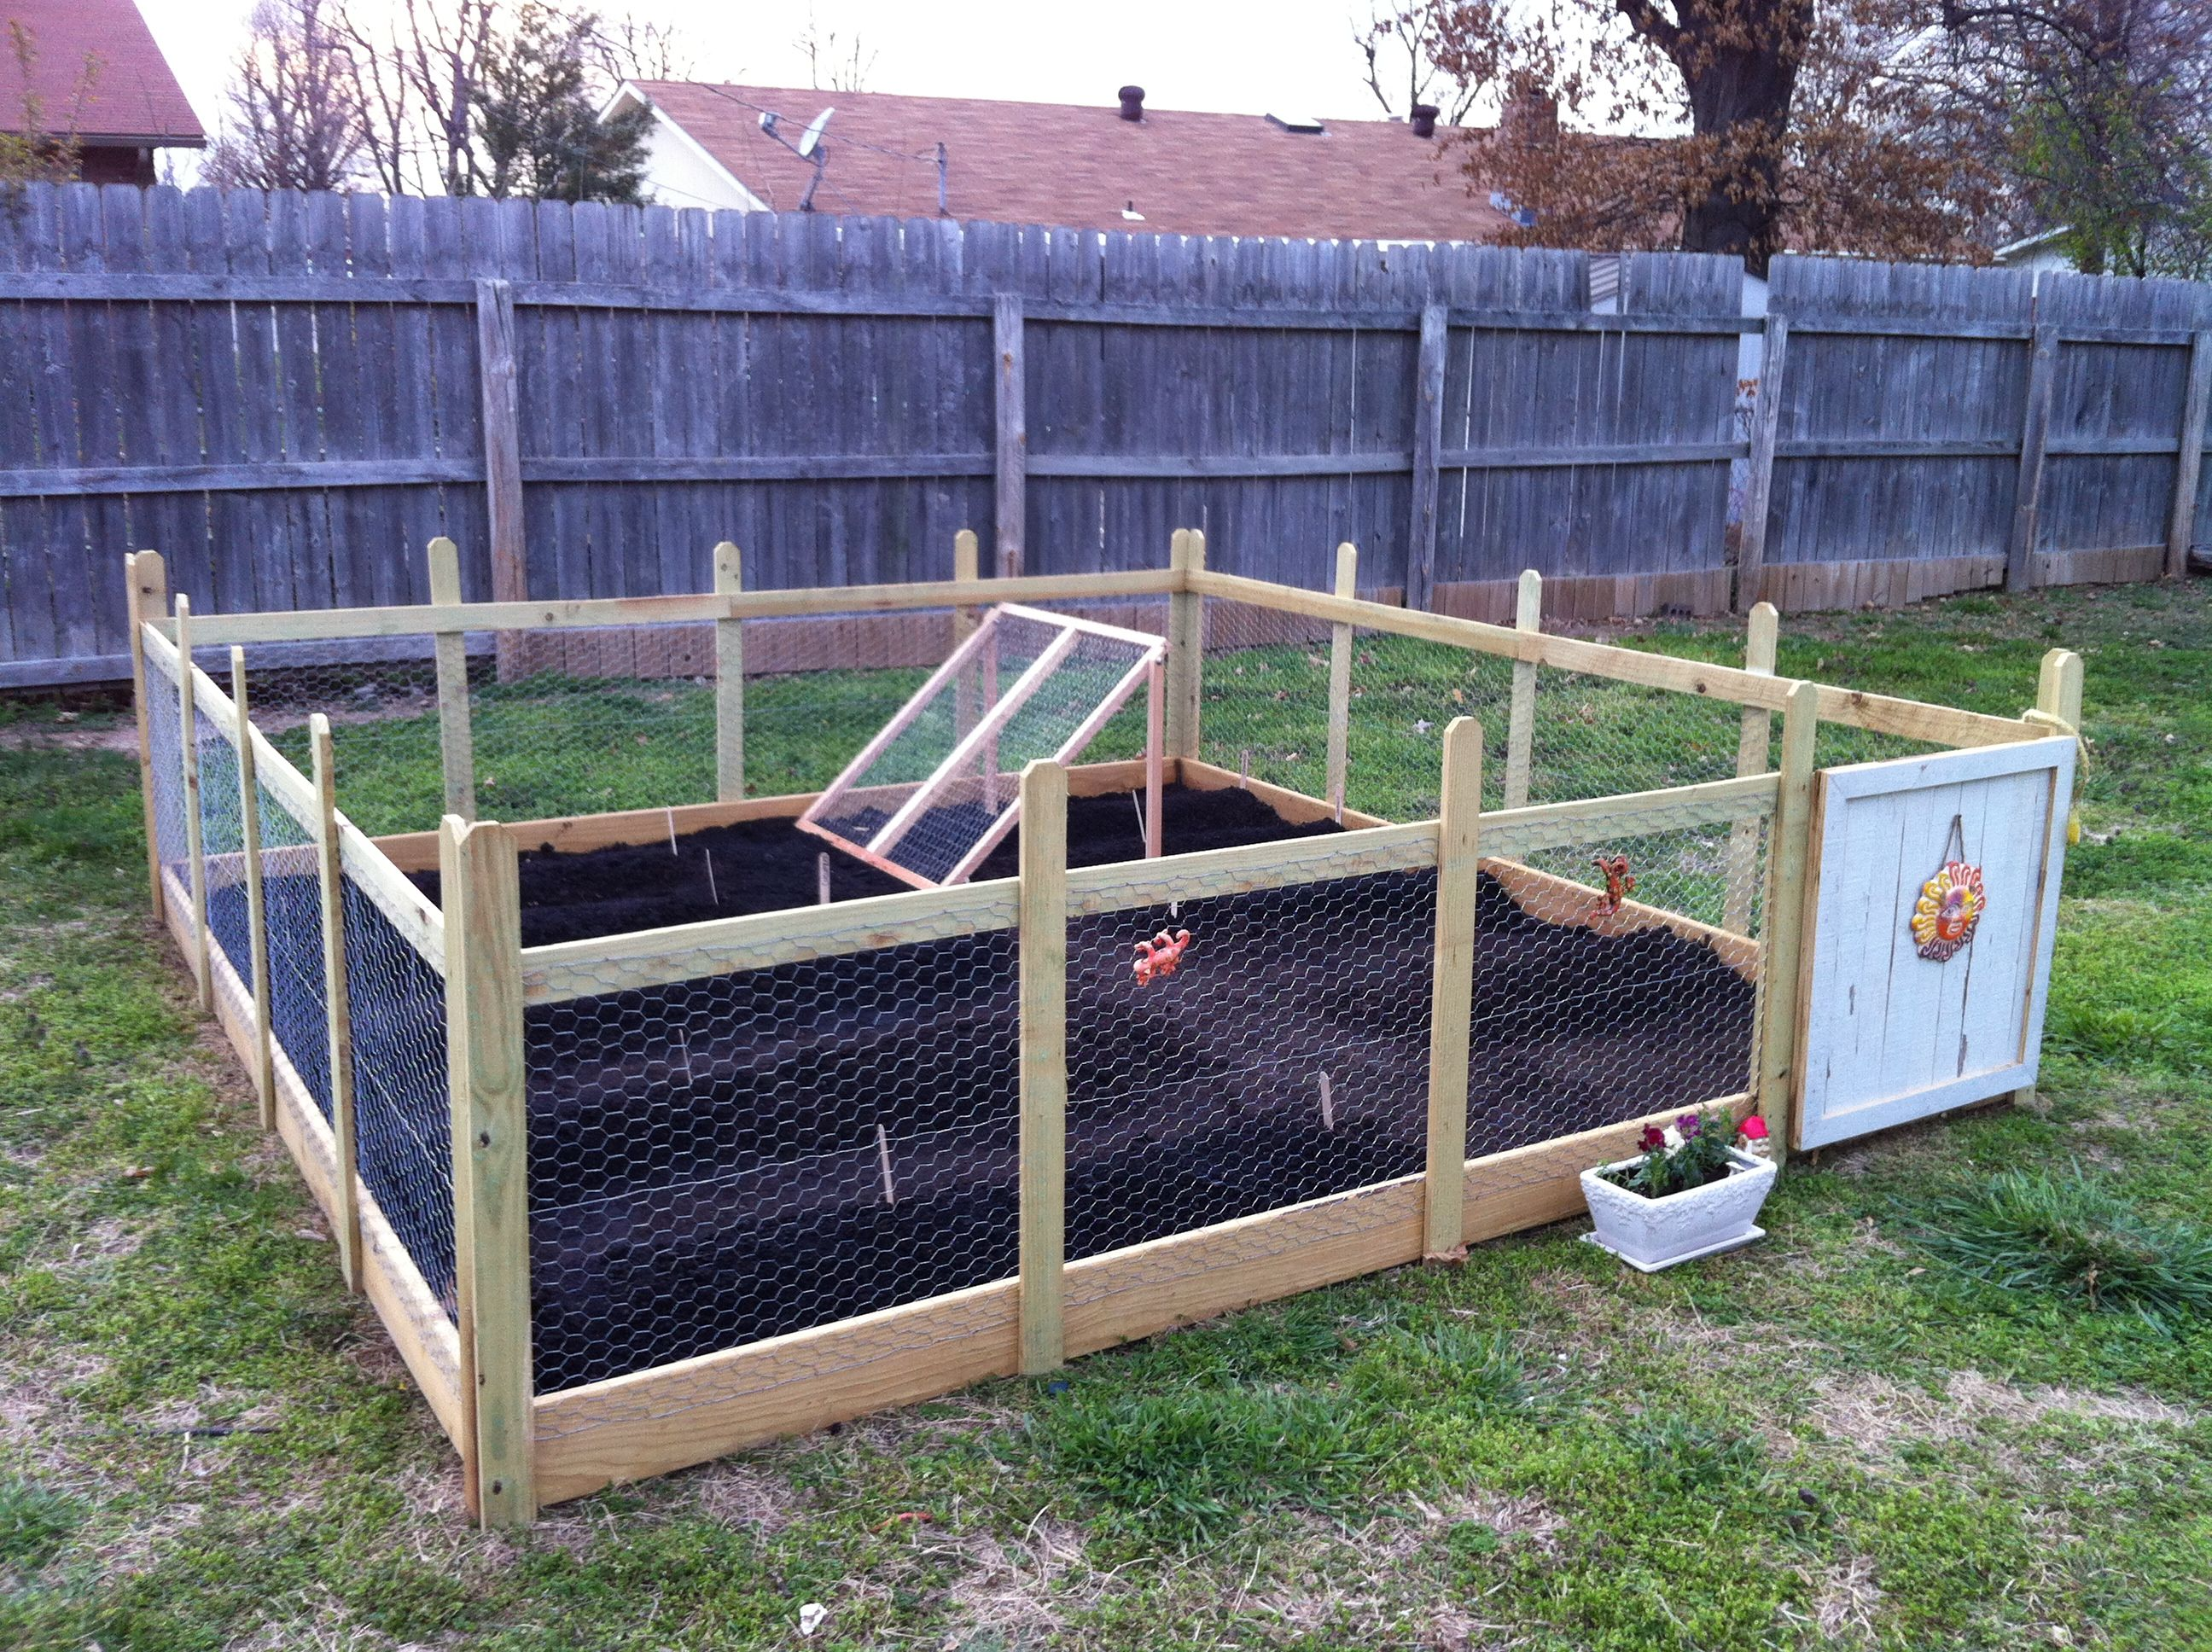 Pin By Lindsey Russell On Gardening Chicken Wire Fence Chicken Fence Fenced Vegetable Garden